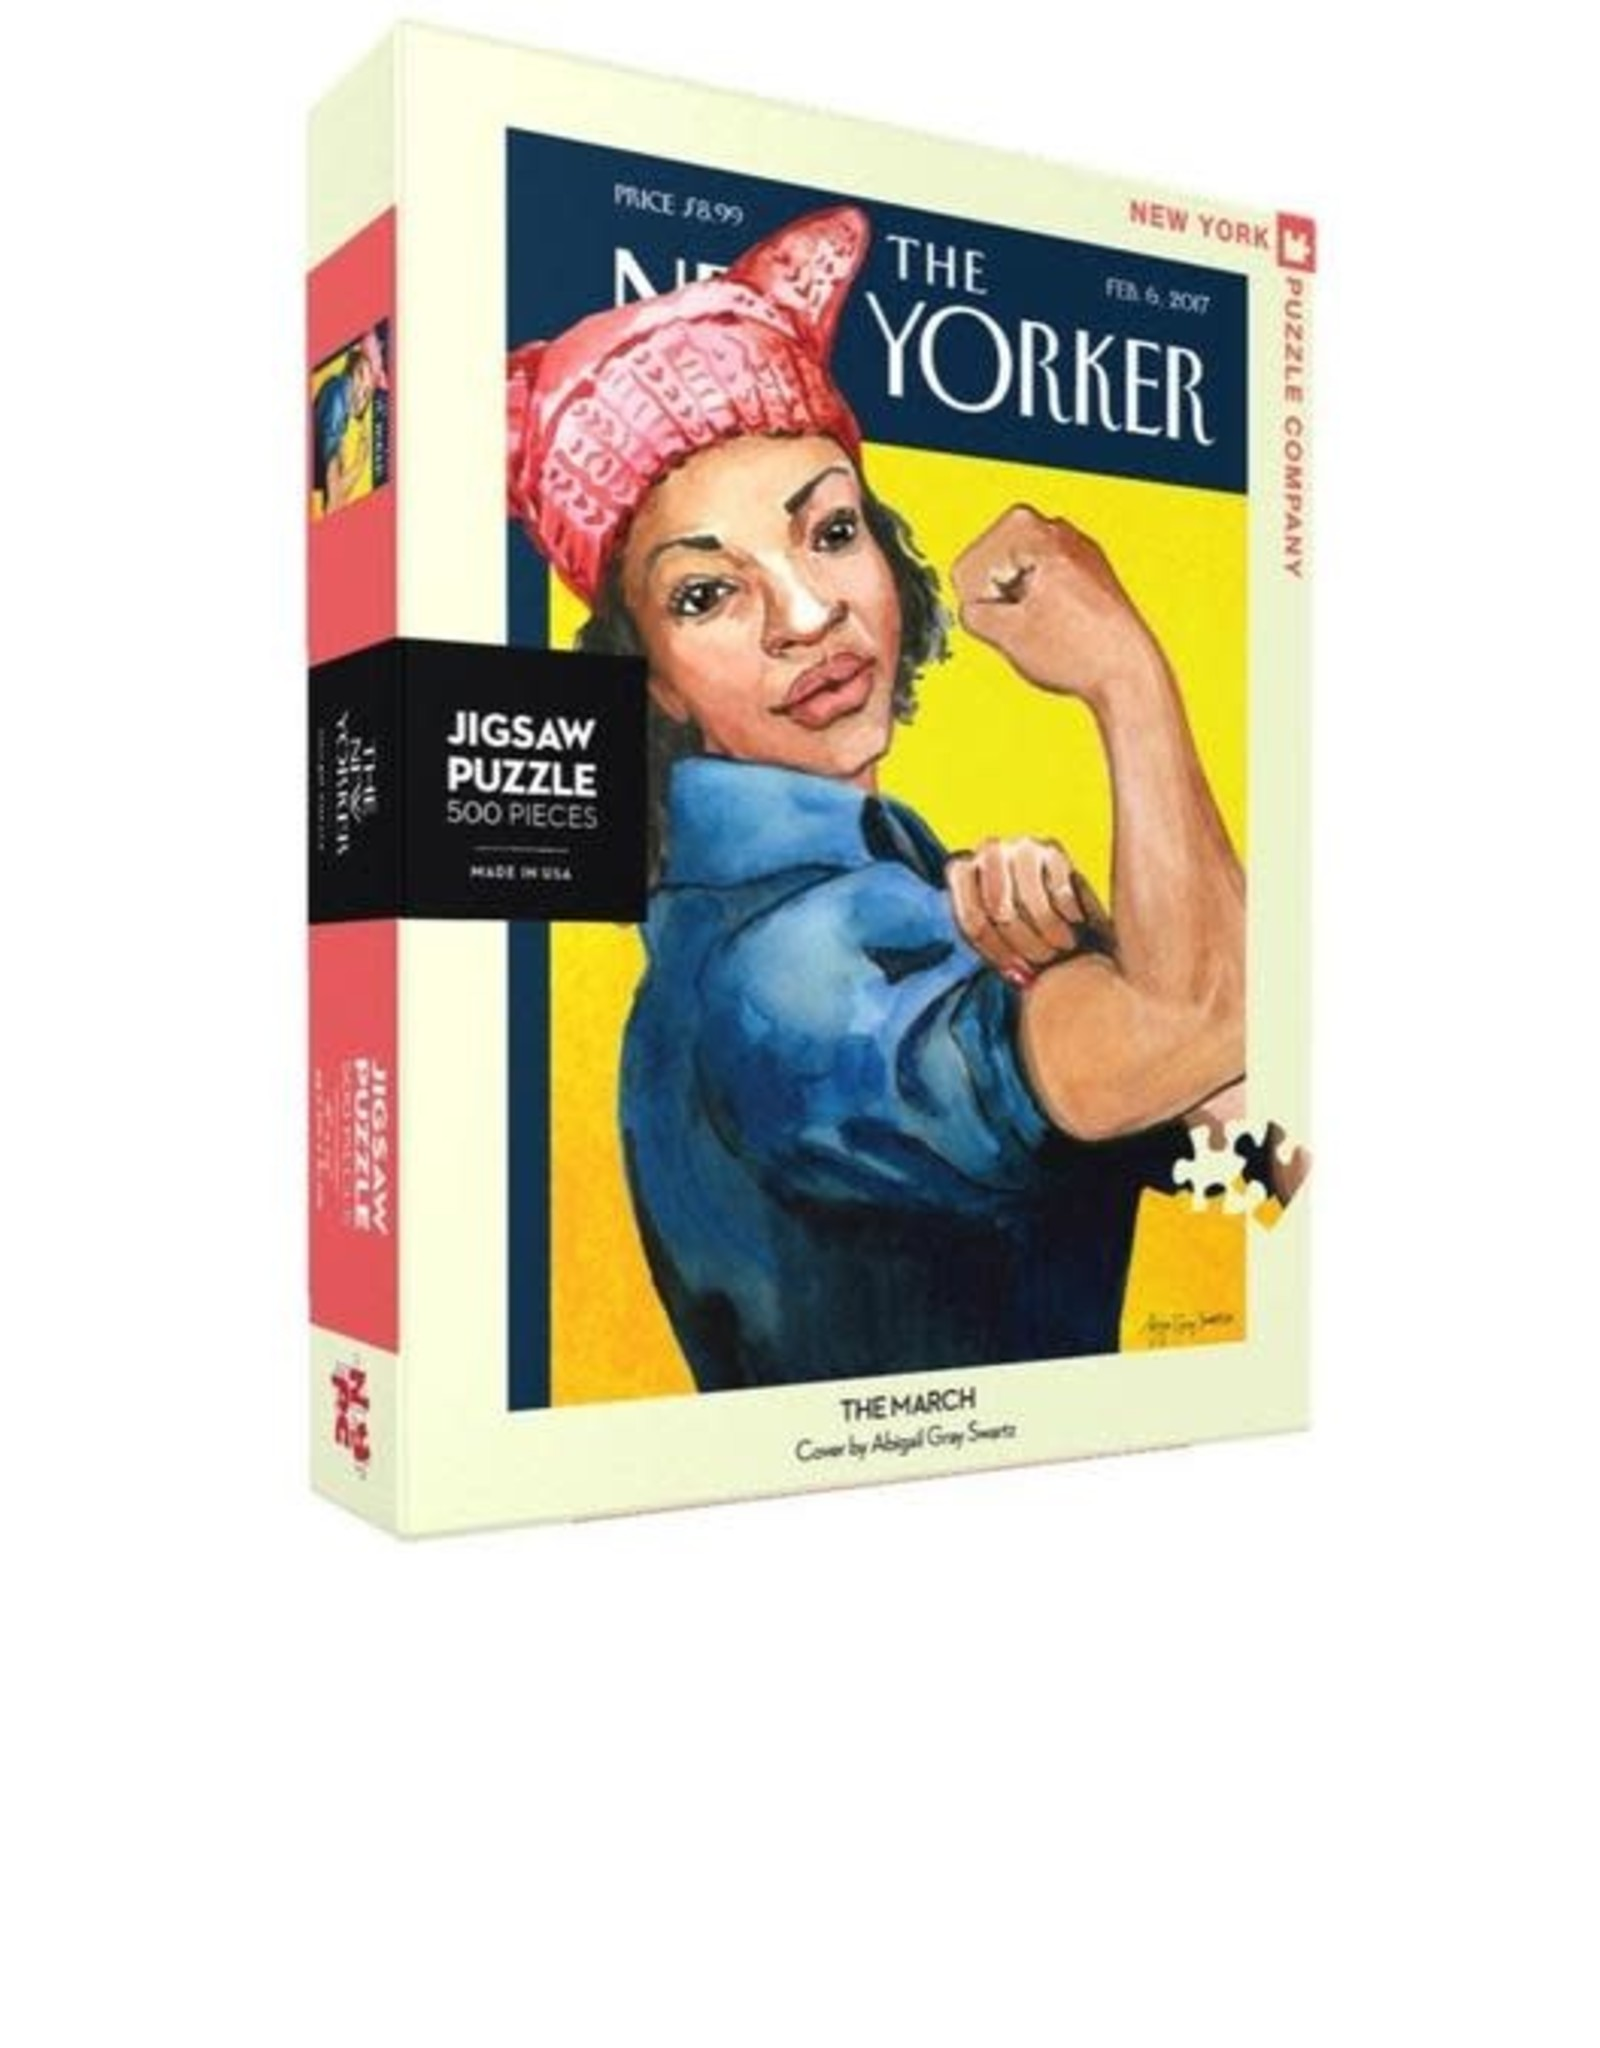 The March, Rosie Riveter, 500 piece jigsaw puzzle